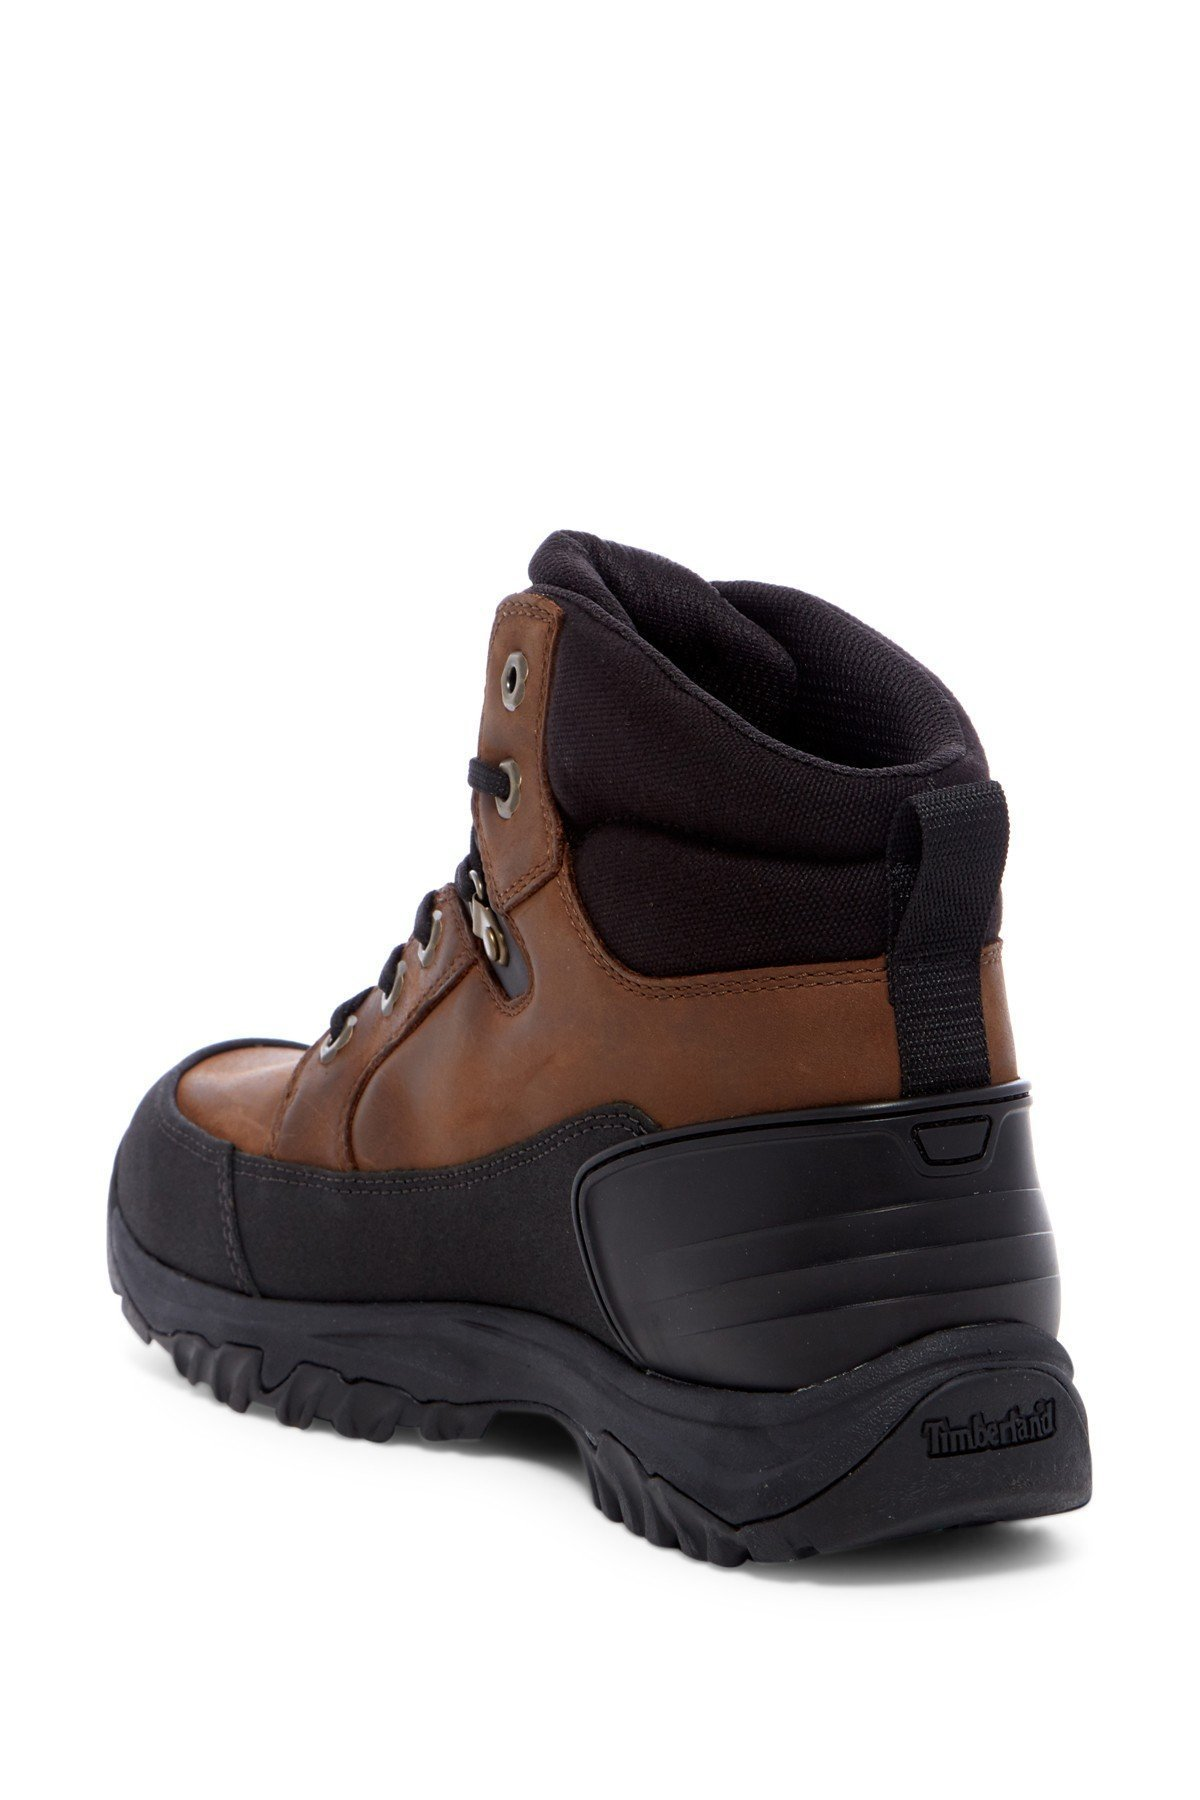 大人気 Guyd Waterproof Hiking Boot - Wide Width Avail ブーツ